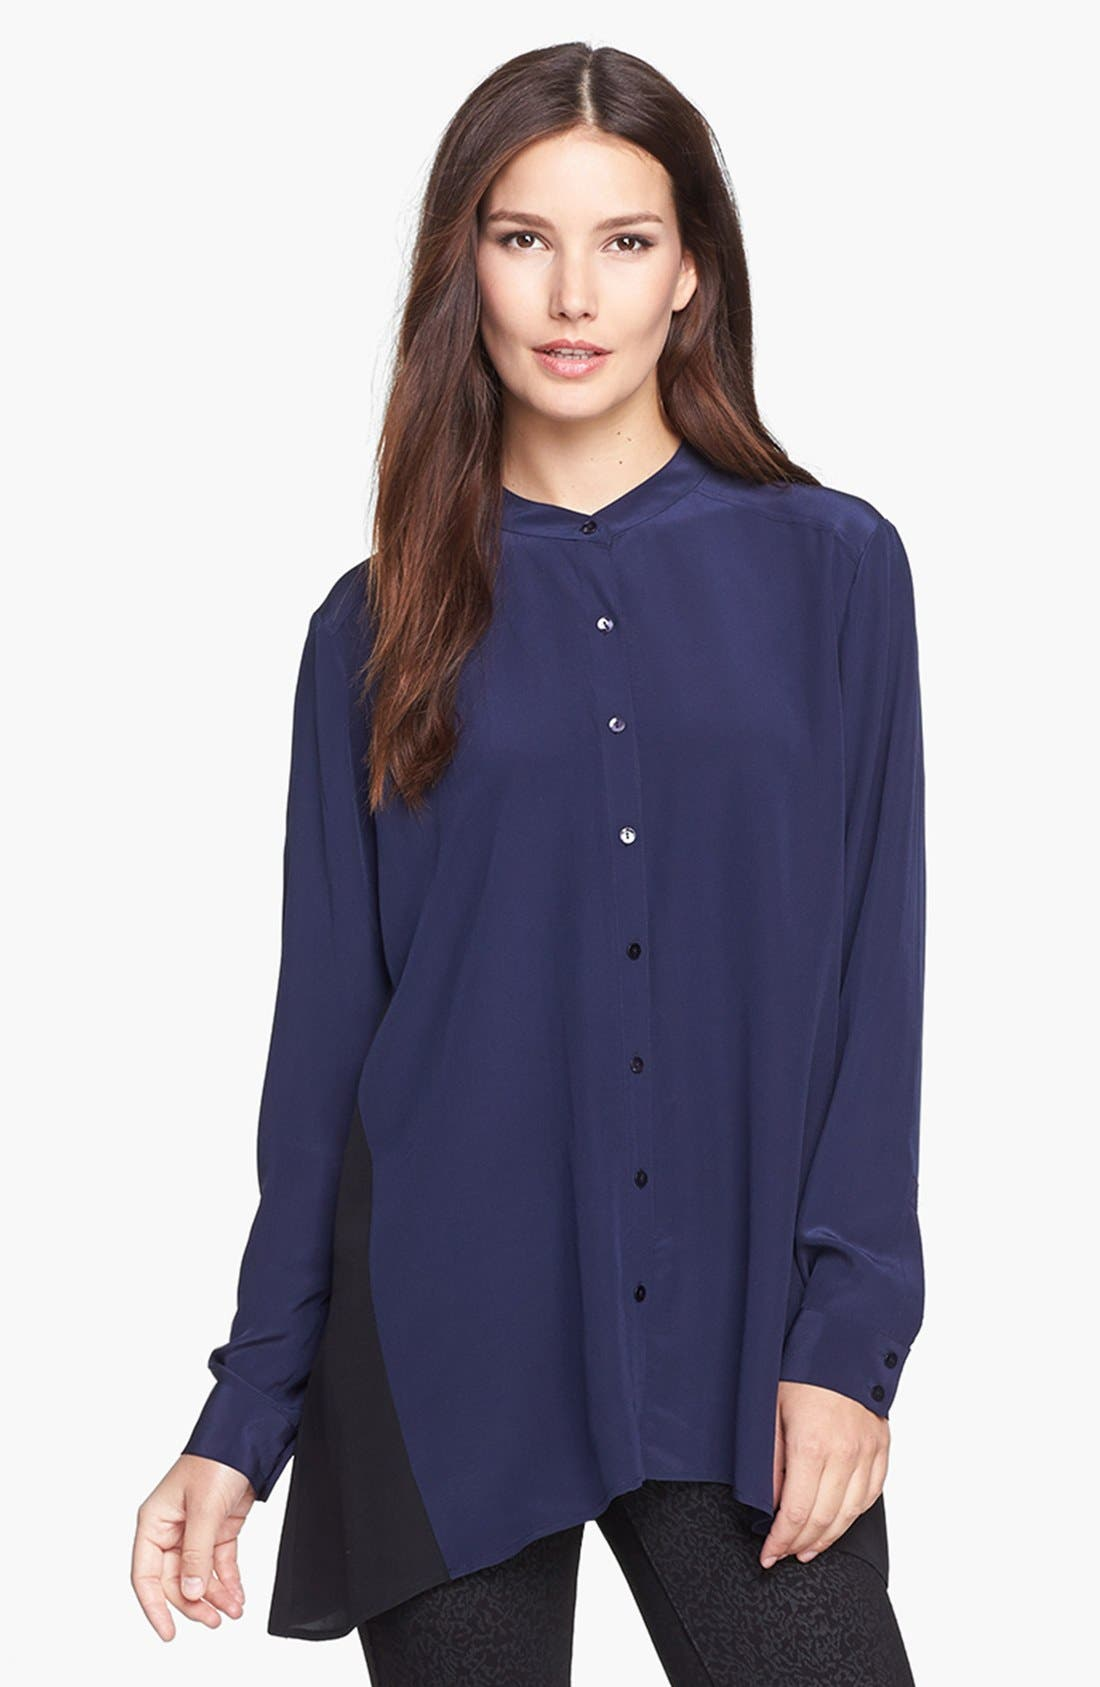 Alternate Image 1 Selected - Eileen Fisher Mandarin Collar Silk Shirt (Online Exclusive)